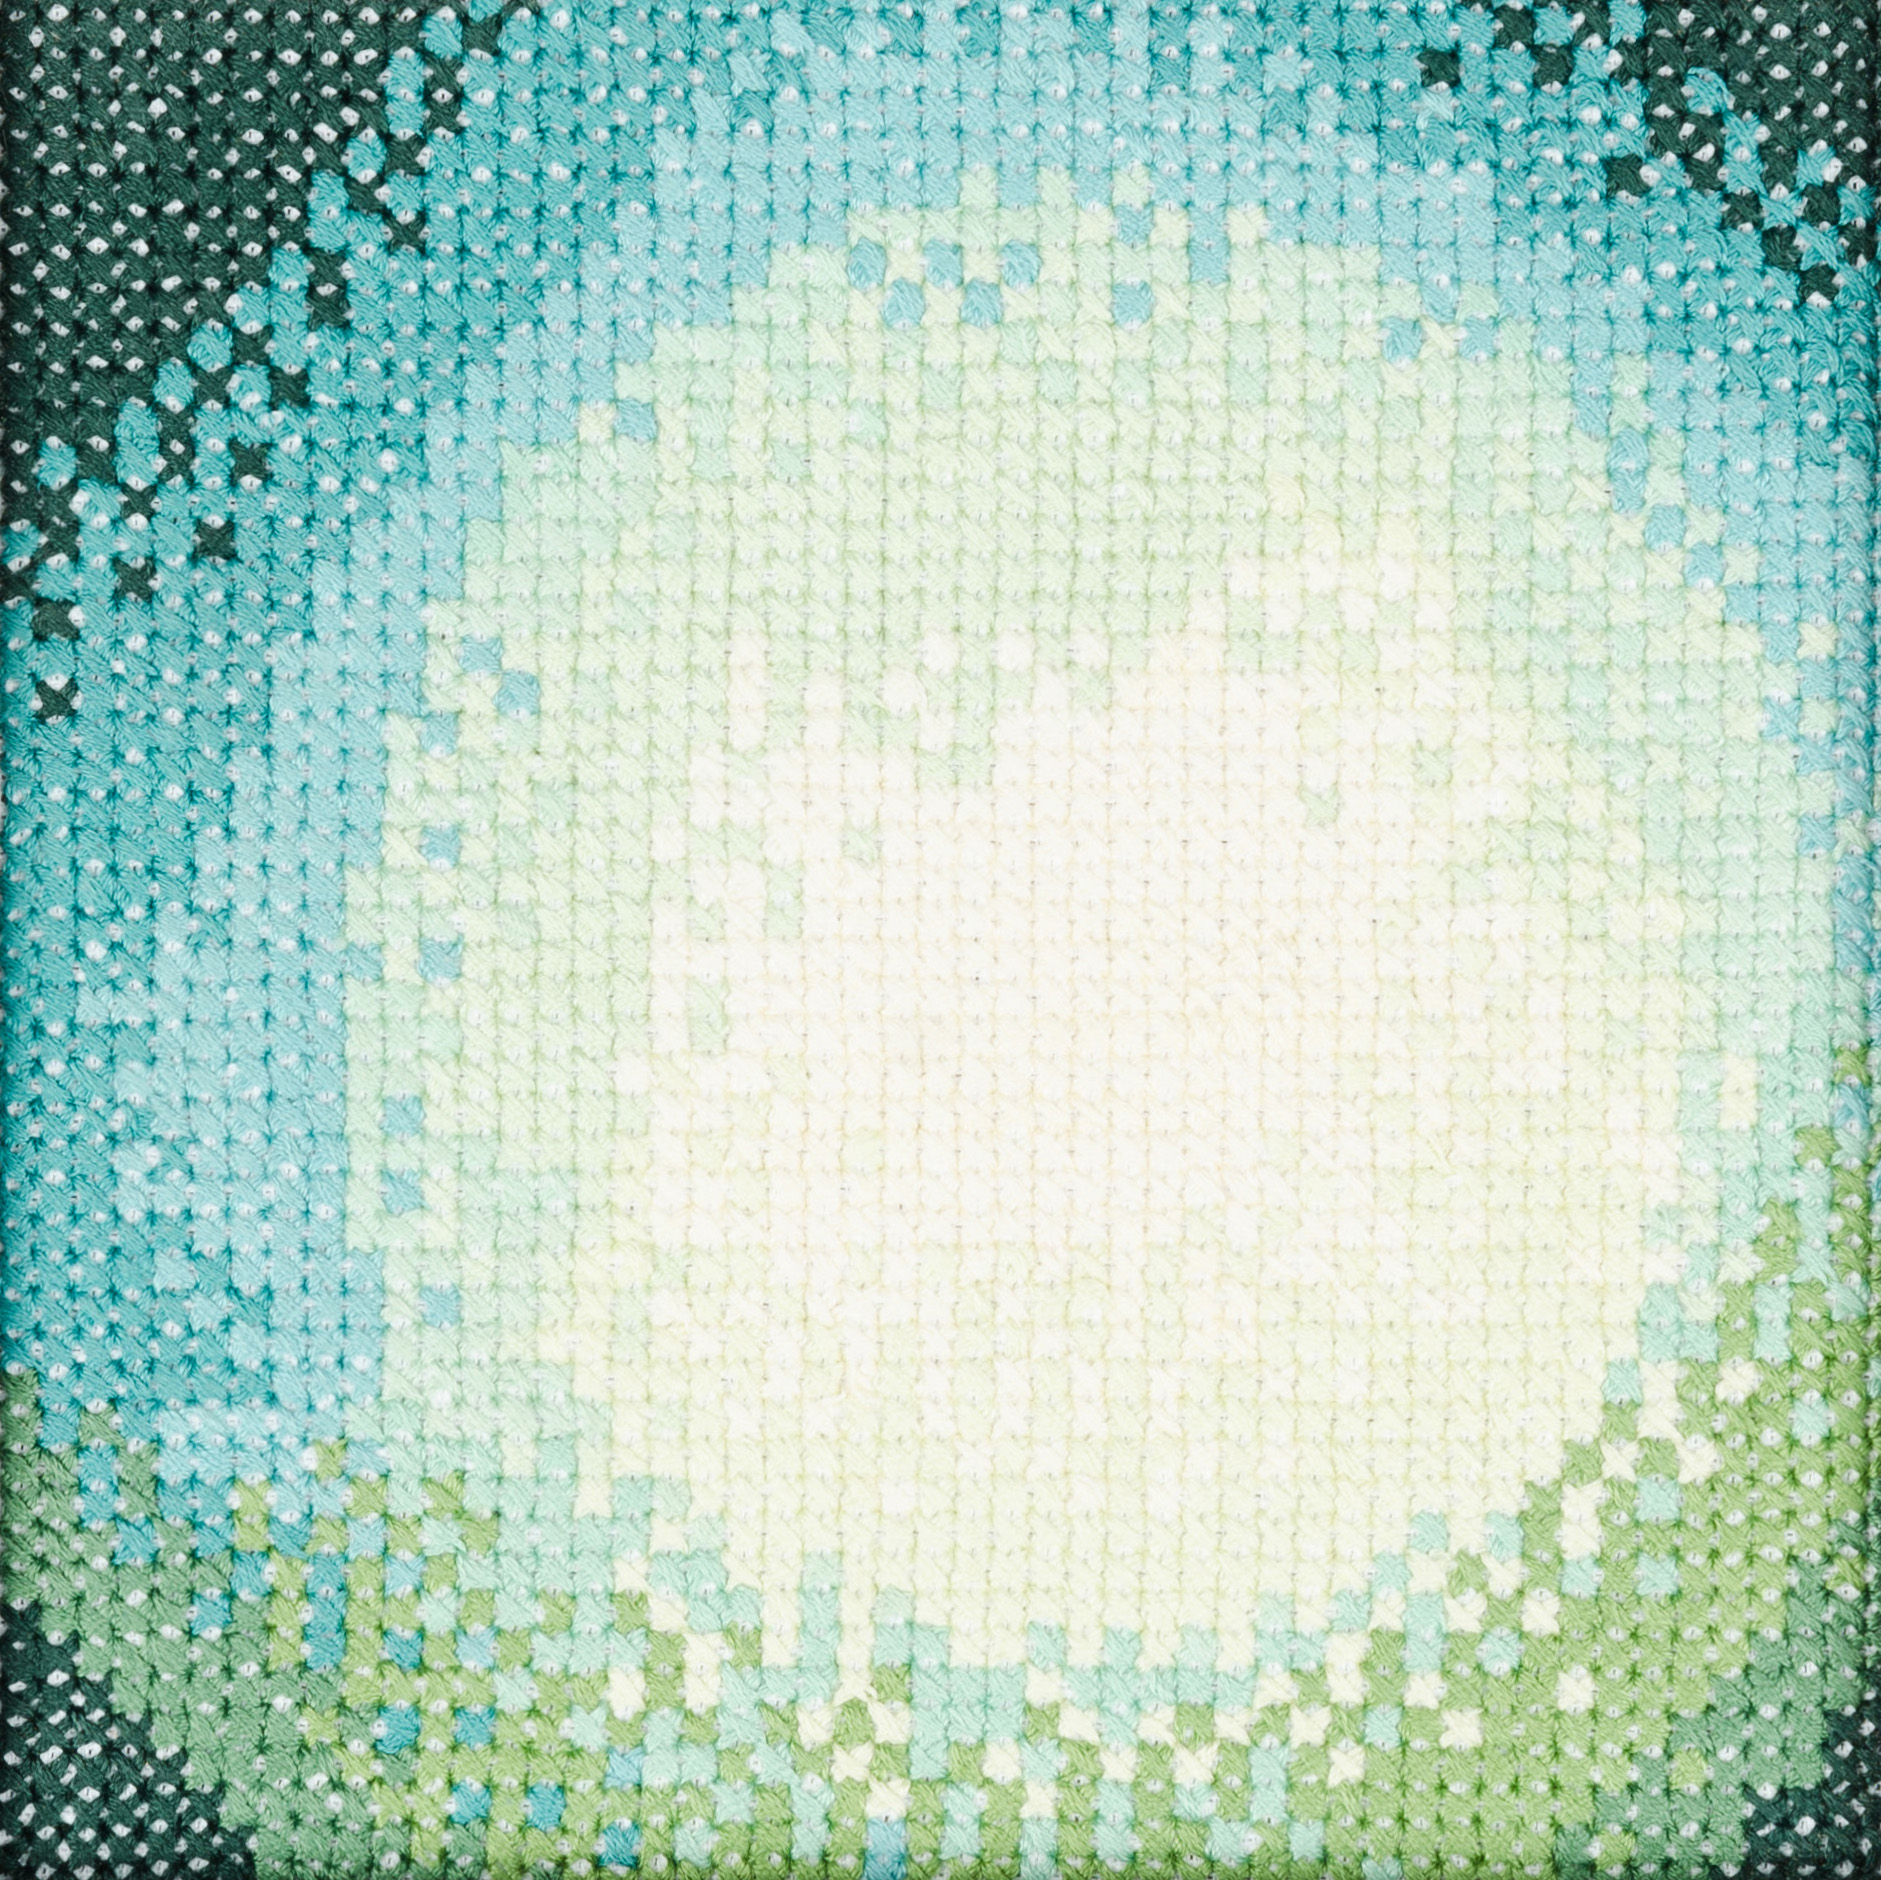 PIERRE LE RICHE. Gradient in blue and green, 2016. Cross-stitch embroidery on Aida cloth. 2500 stitched. 190 x 190mm. Framed.jpg